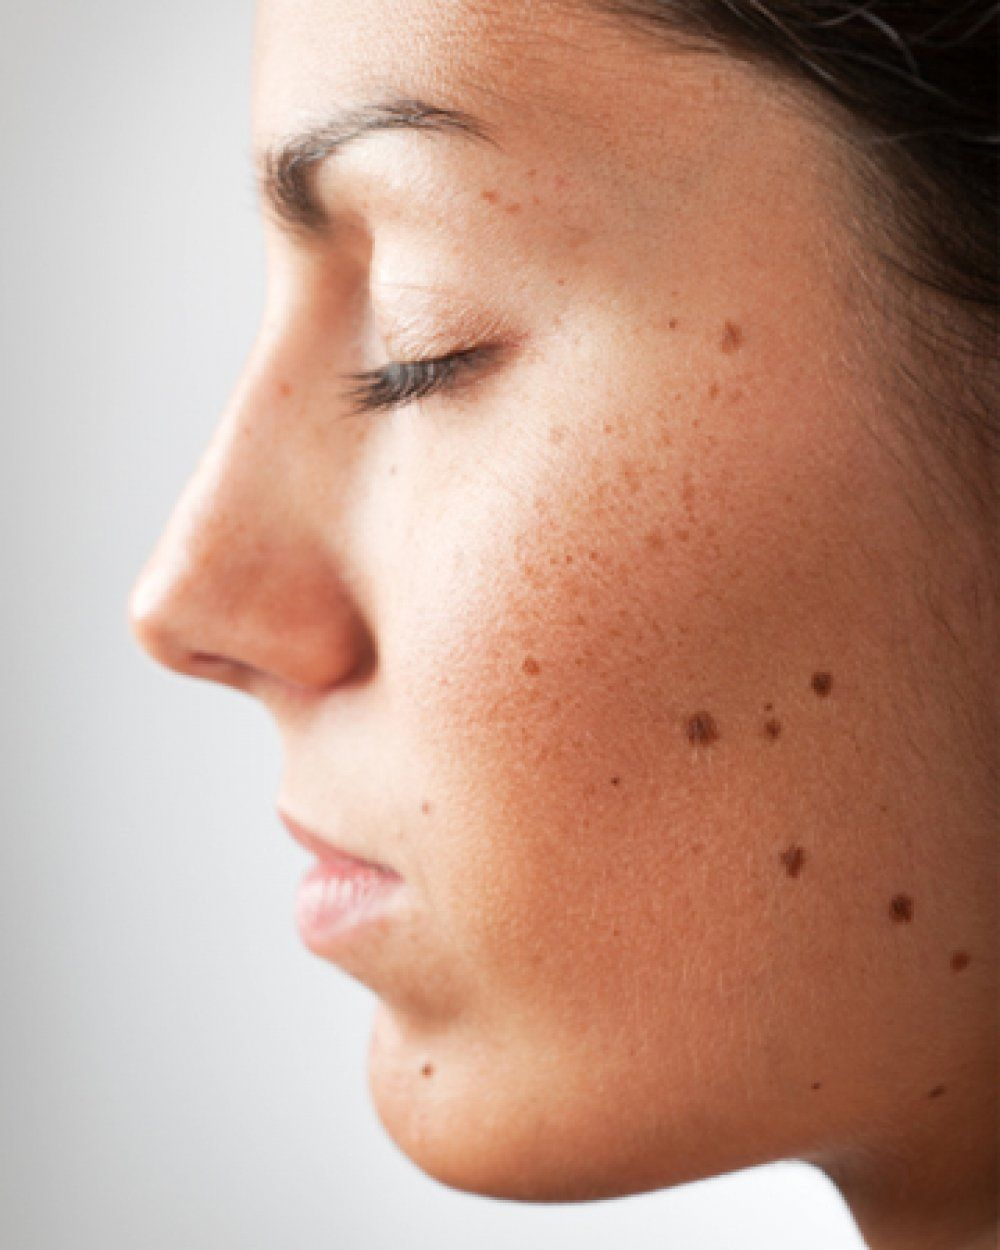 Facial Moles And Warts